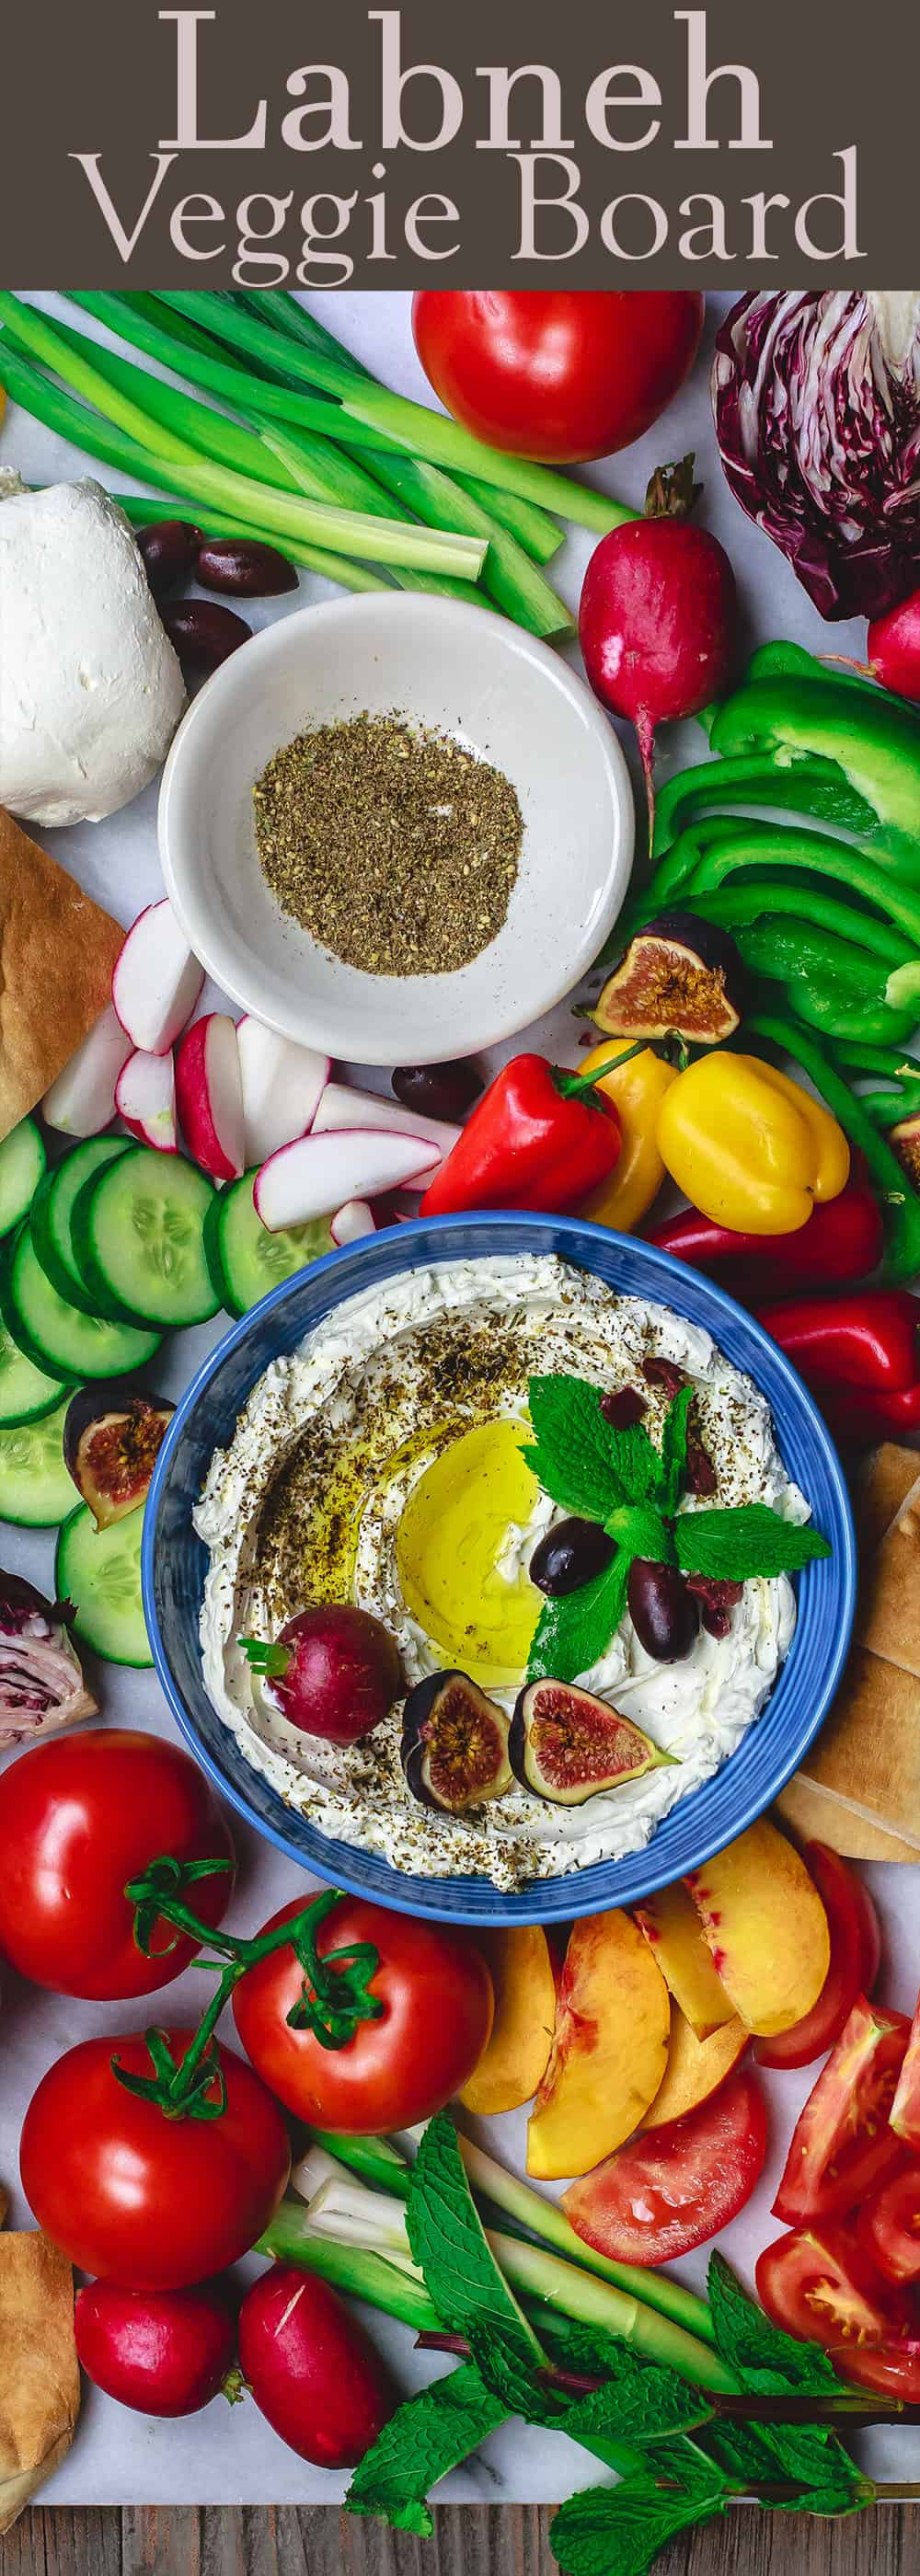 Homemade Labneh Recipe and Veggie Board | The Mediterranean Dish. Easy Middle Eastern labneh, creamy yogurt cheese! Serve it as a dip with lots of olive oil, veggies, olives and warm pita. See the labneh recipe and how to make this board on TheMediterraneanDish.com